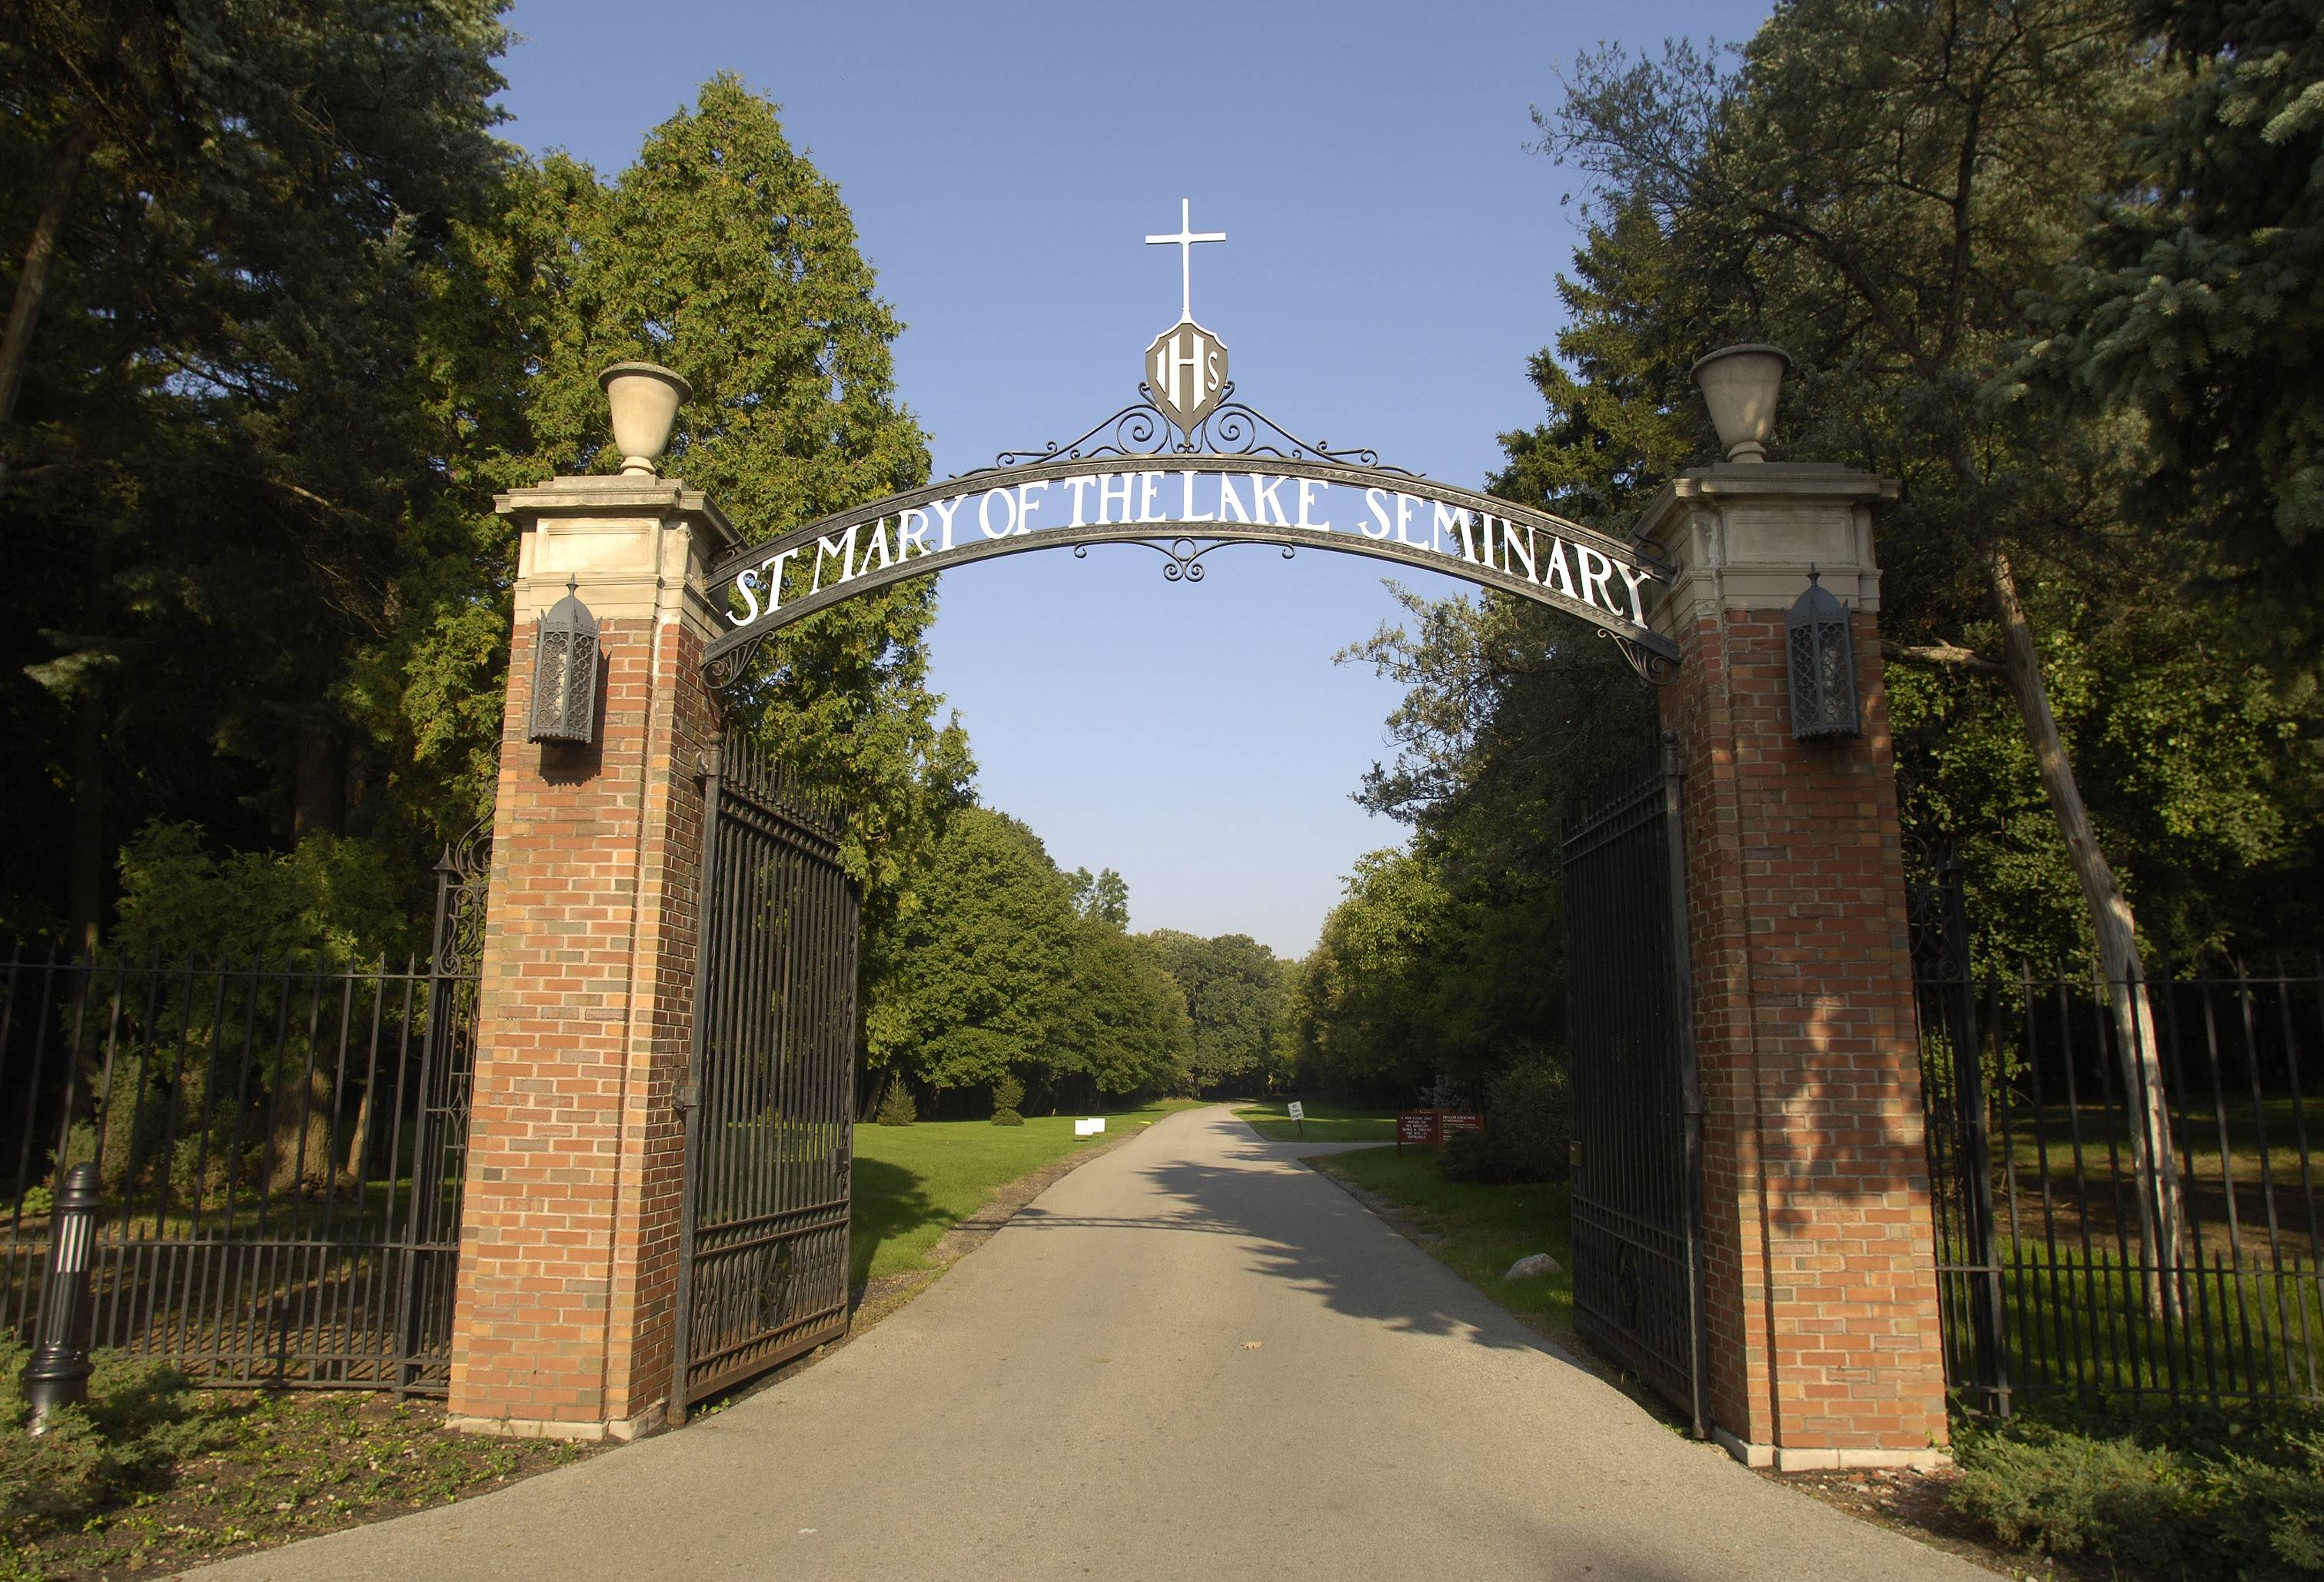 St. Mary of the Lake Seminary in Mundelein was cited earlier this year by the Illinois Environmental Protection Agency for a lead-related violation in its water system that has since been cleared up, according to state records.